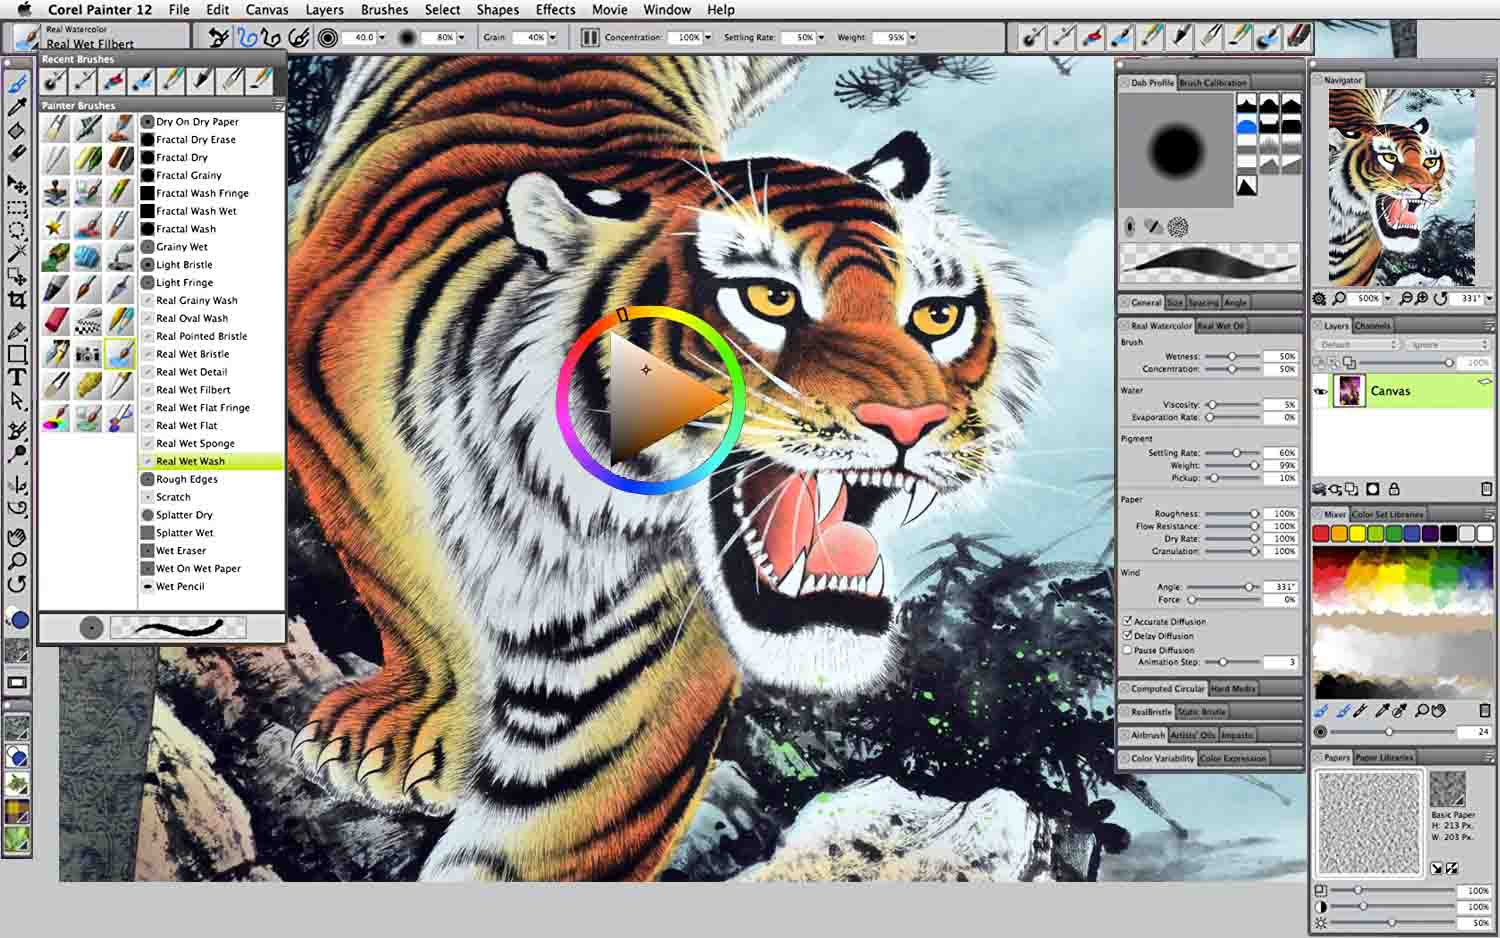 Corel Painter is a quality piece of drawing software, very much oriented to digital painting